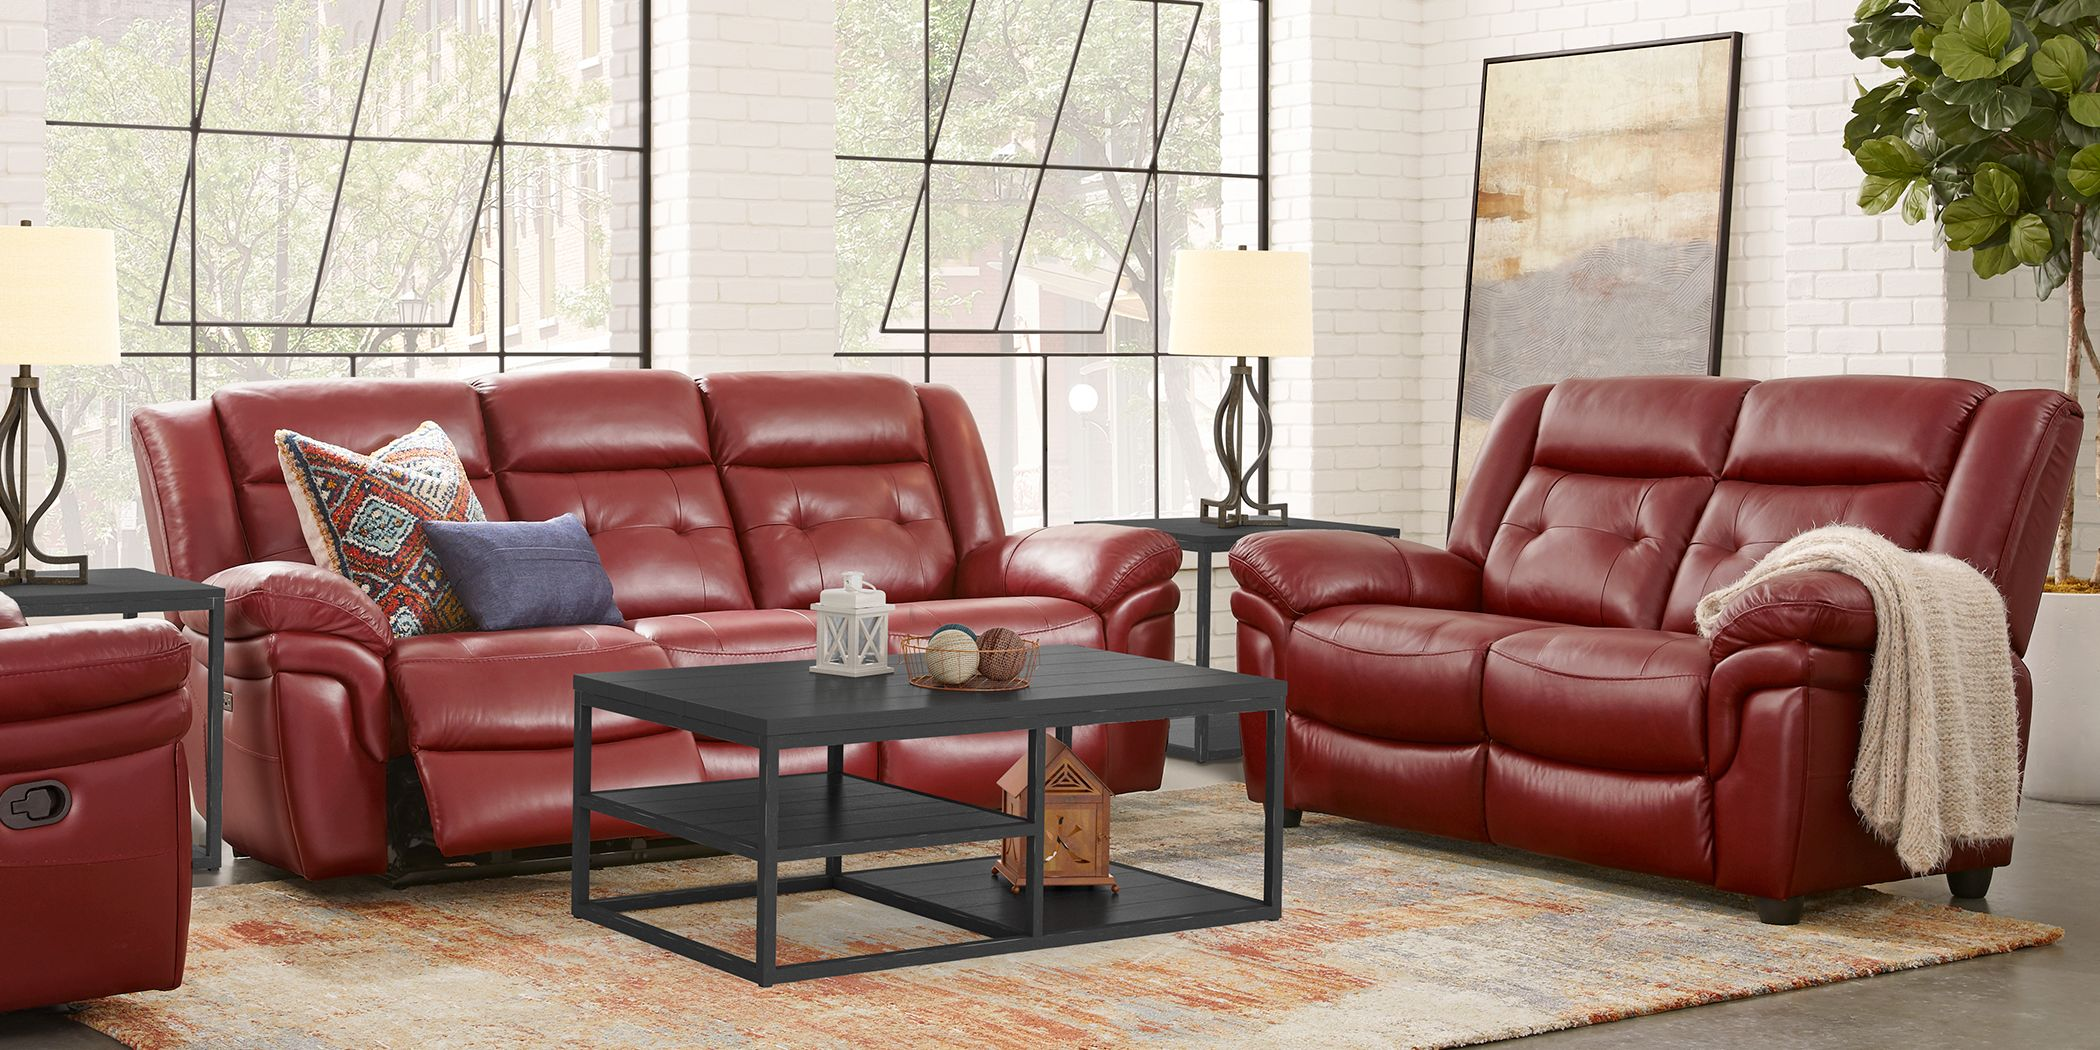 ventoso-red-leather-5-pc-living-room-with-reclining-sofa